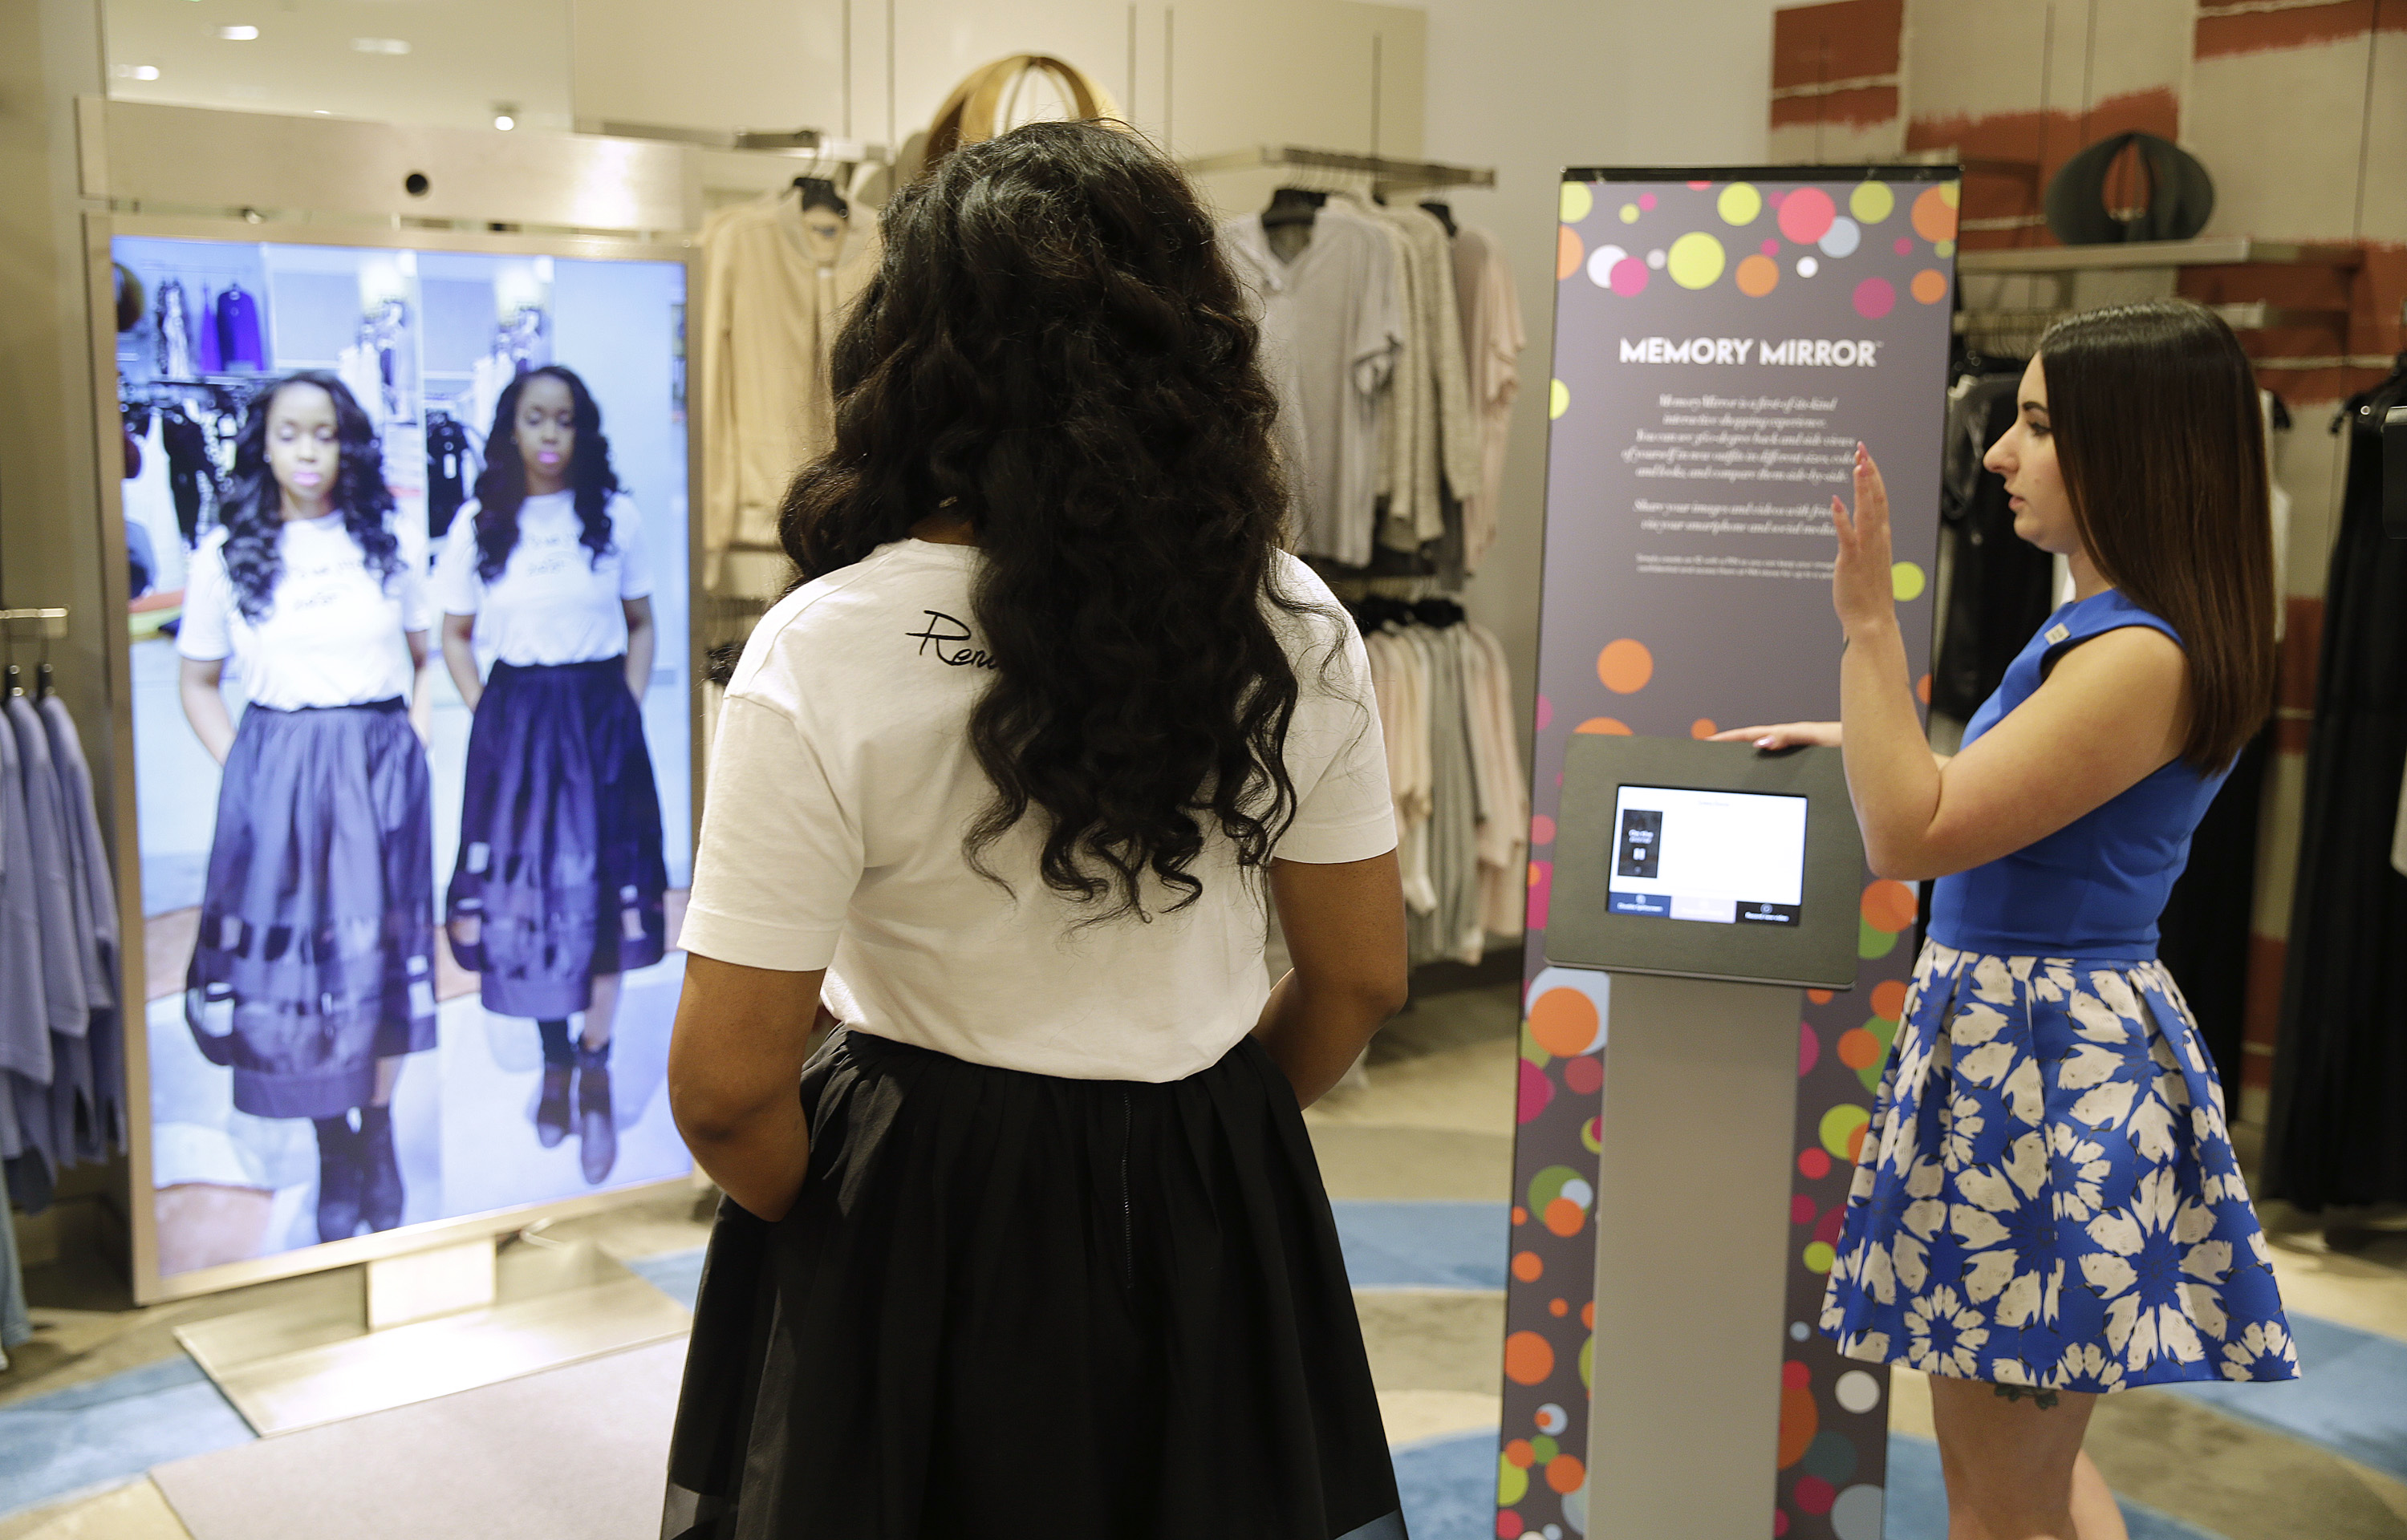 902a9f6067e High-tech fitting room  smart  mirrors could help you be the fairest one of  all